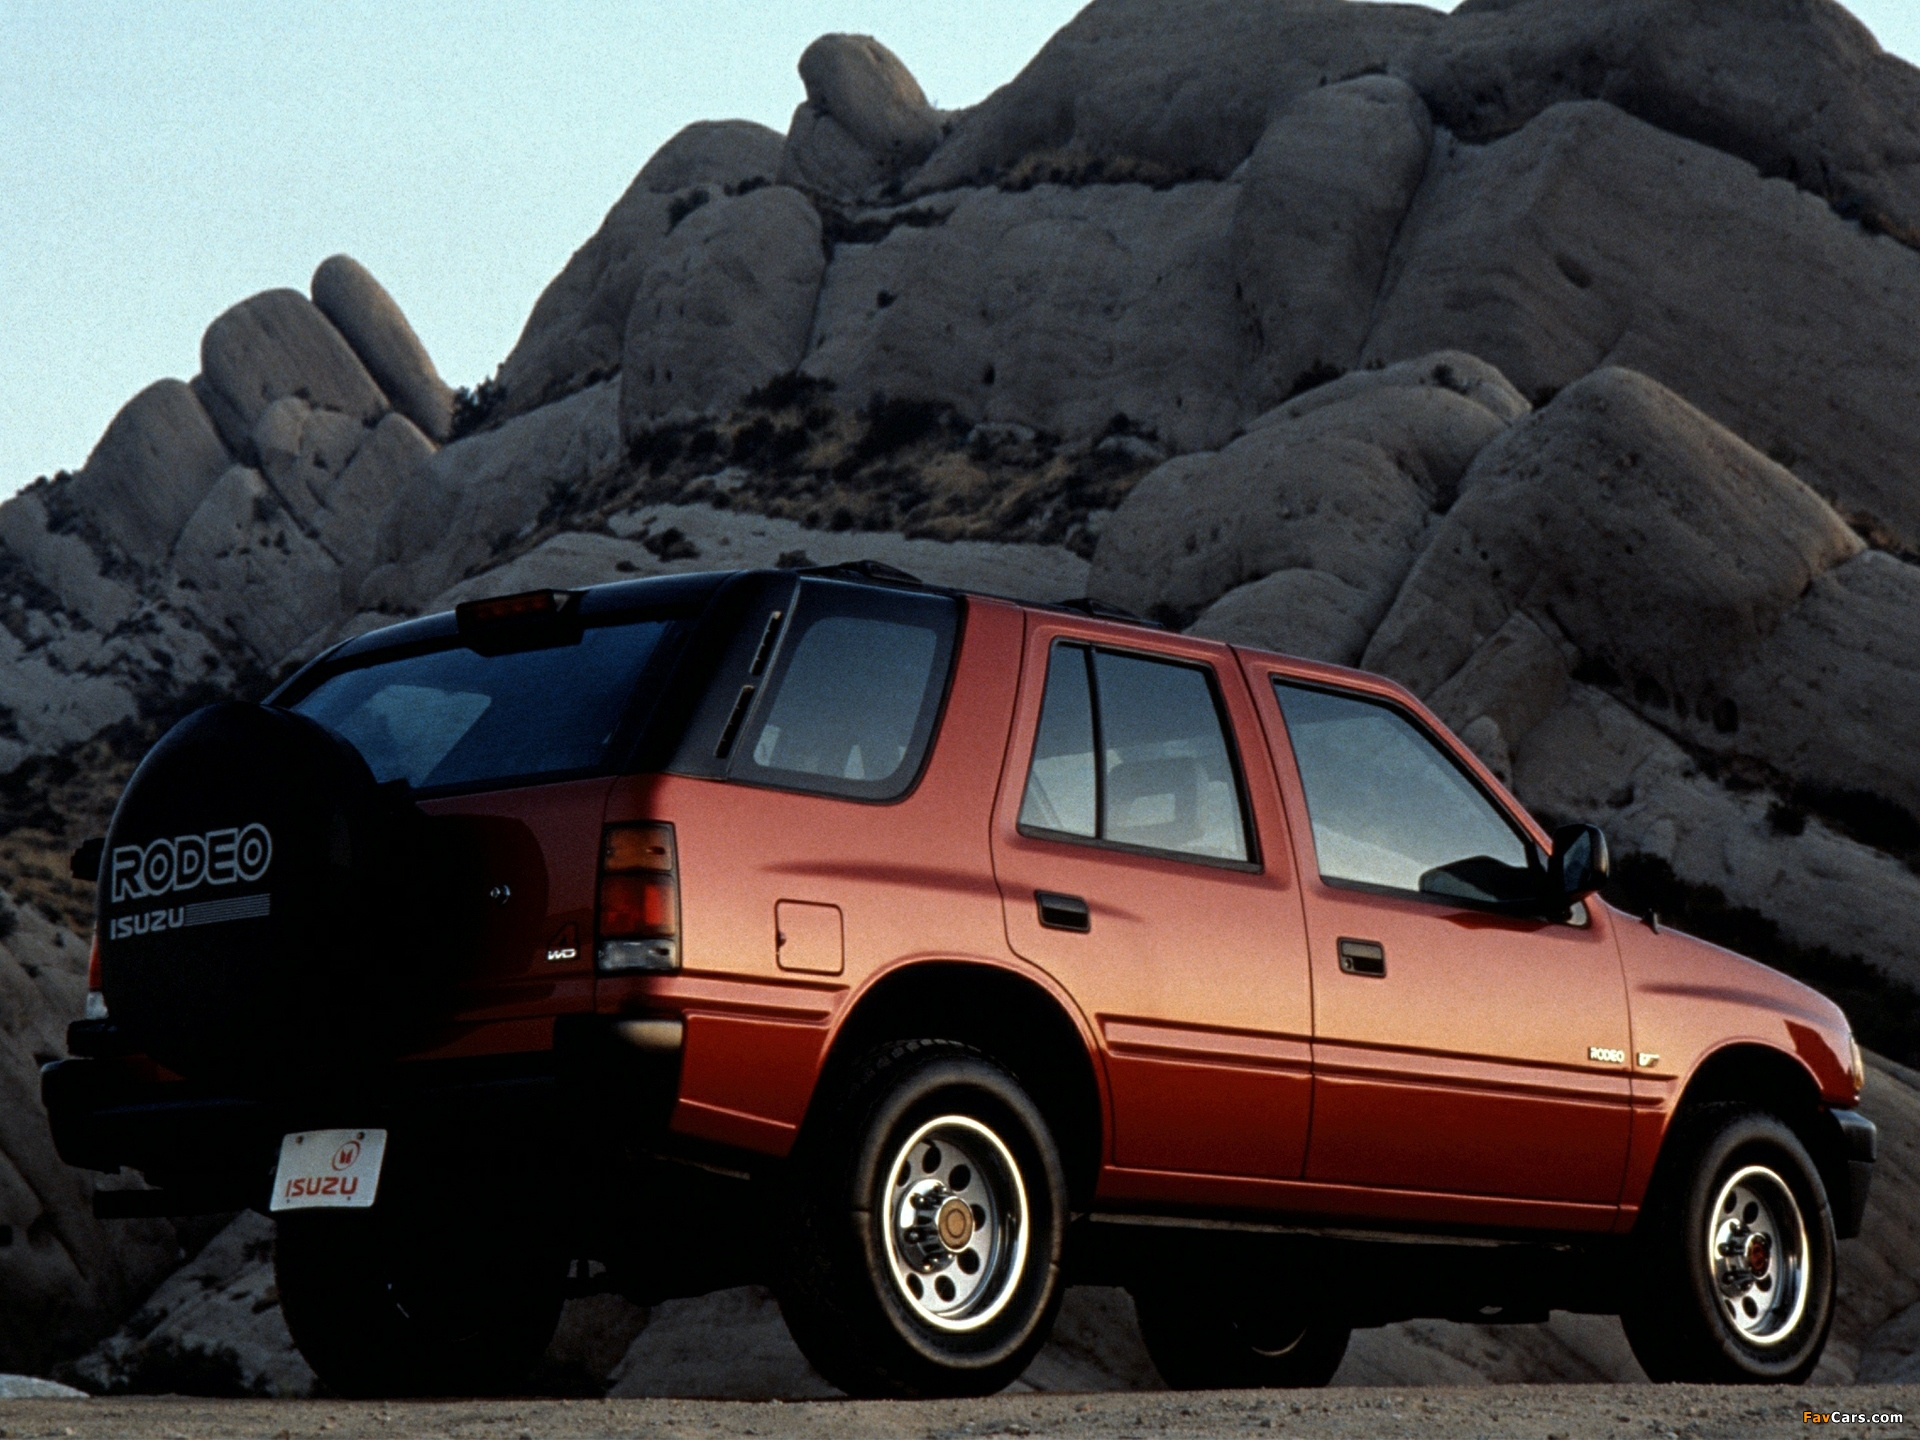 1993 isuzu rodeo information and photos zombiedrive